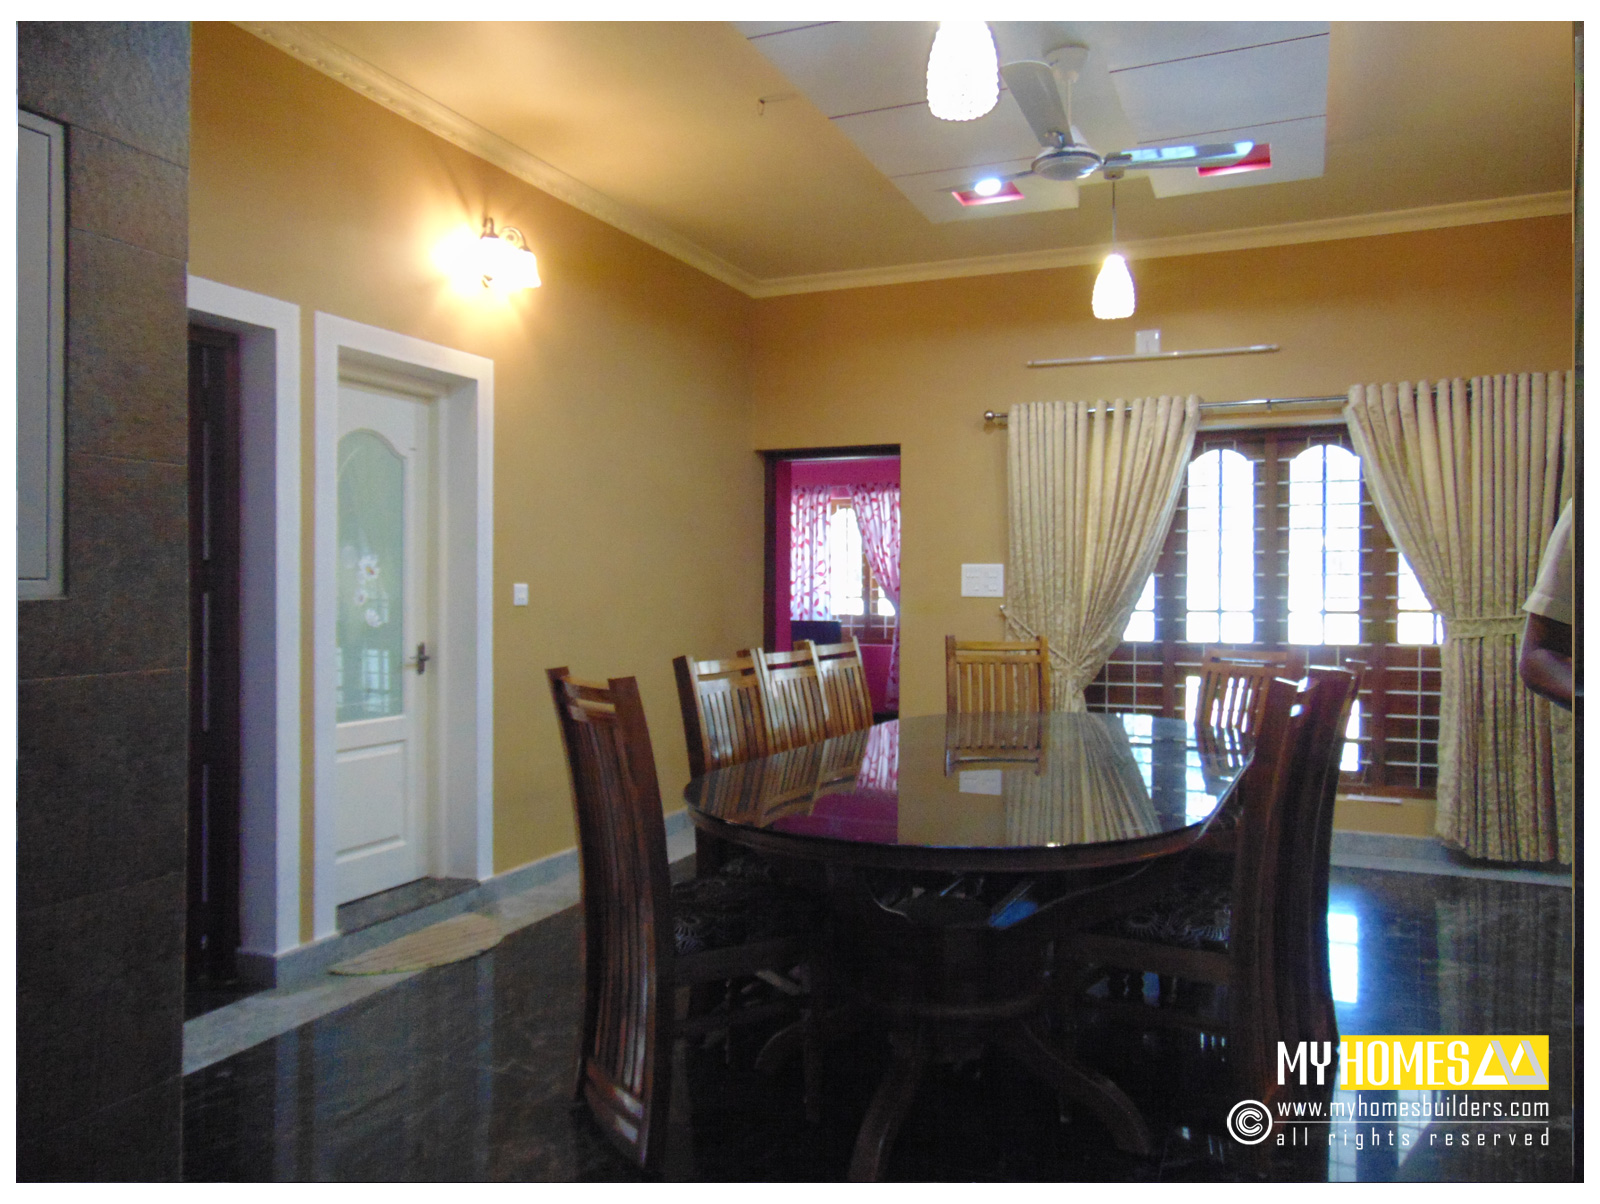 Latest ideas for dining room design kerala from my homes for Dining rooms ideas home